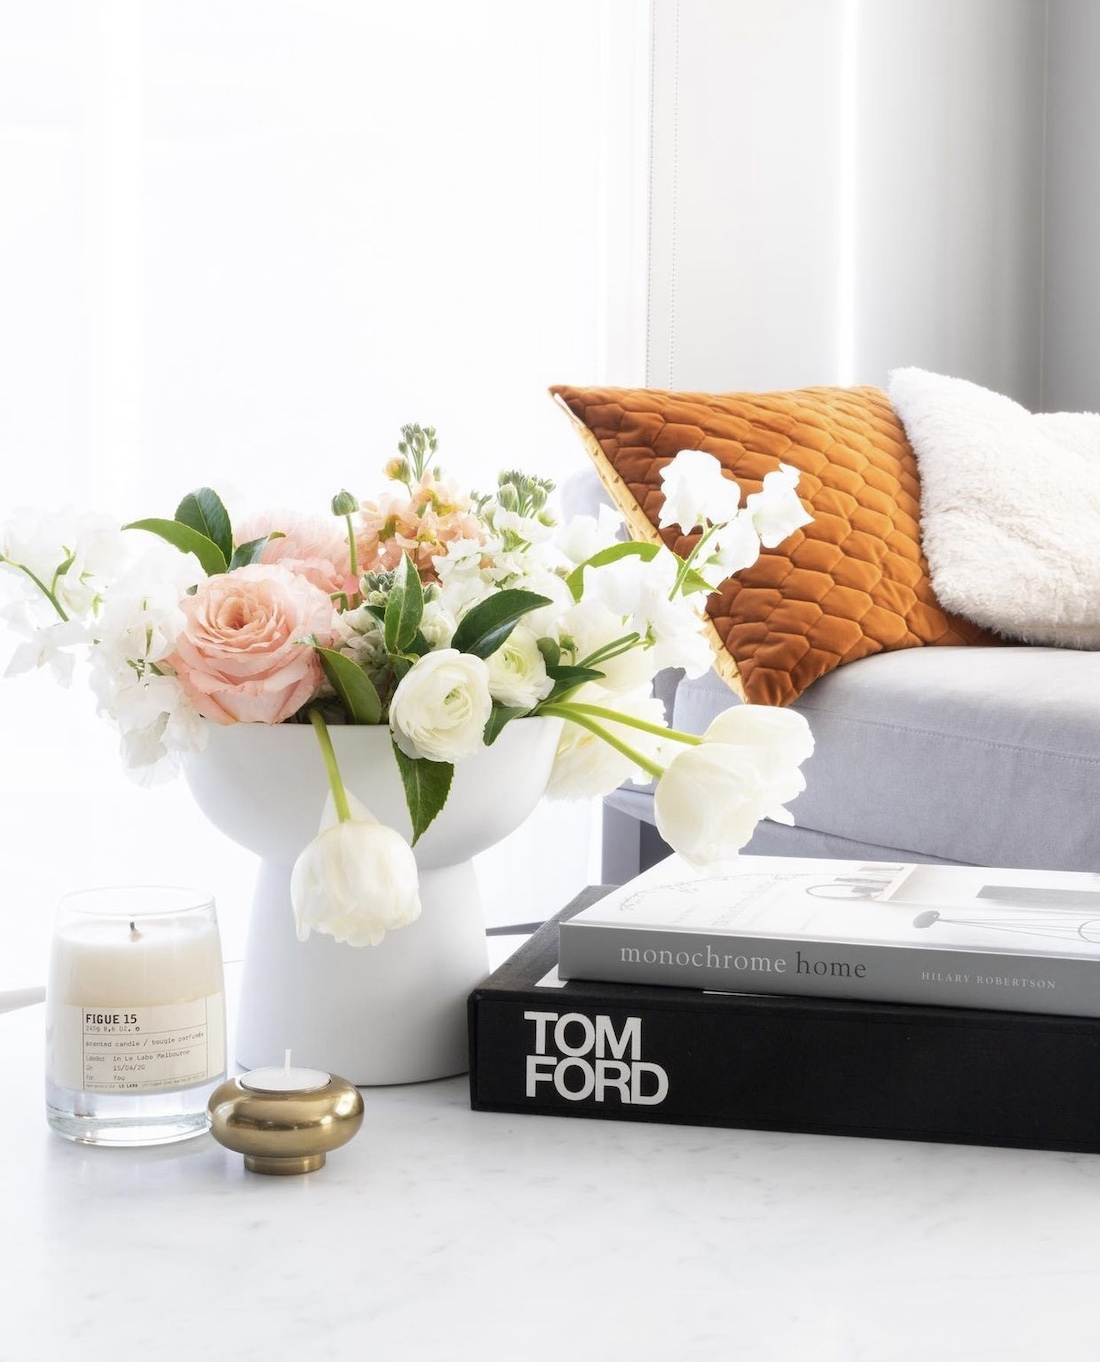 Tom Ford book styled